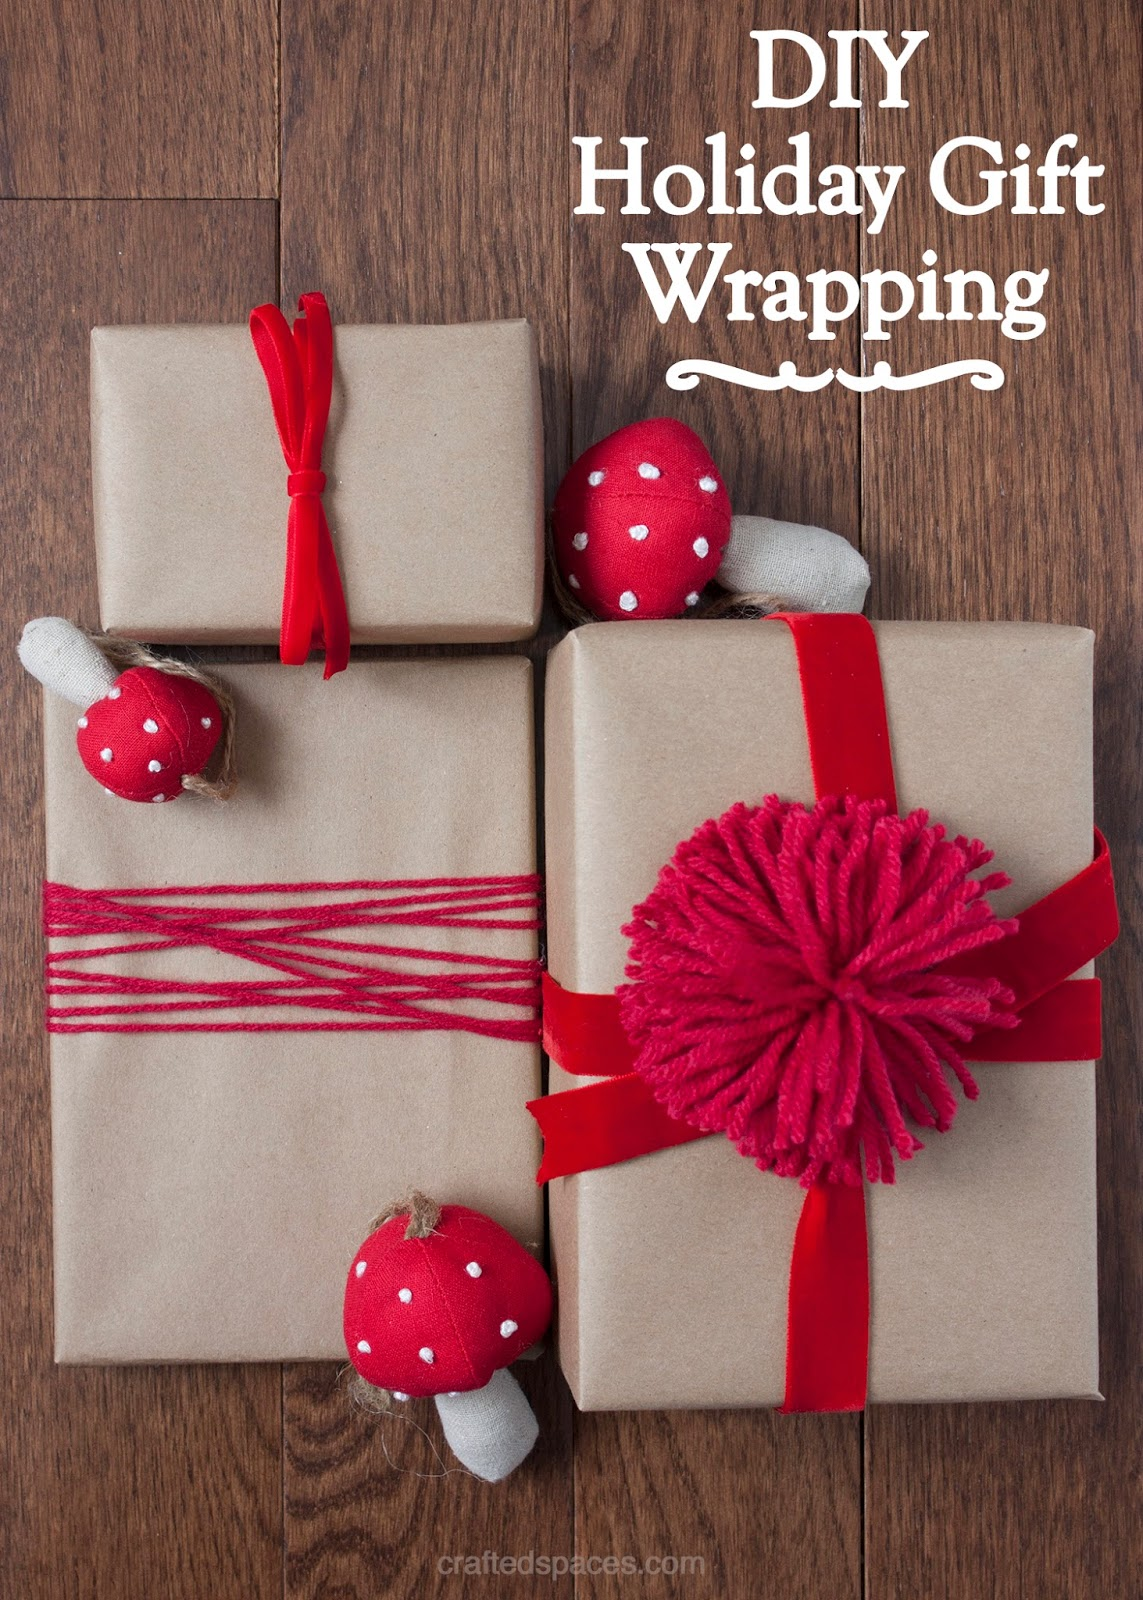 Crafted Spaces: DIY Holiday Gift Wrapping